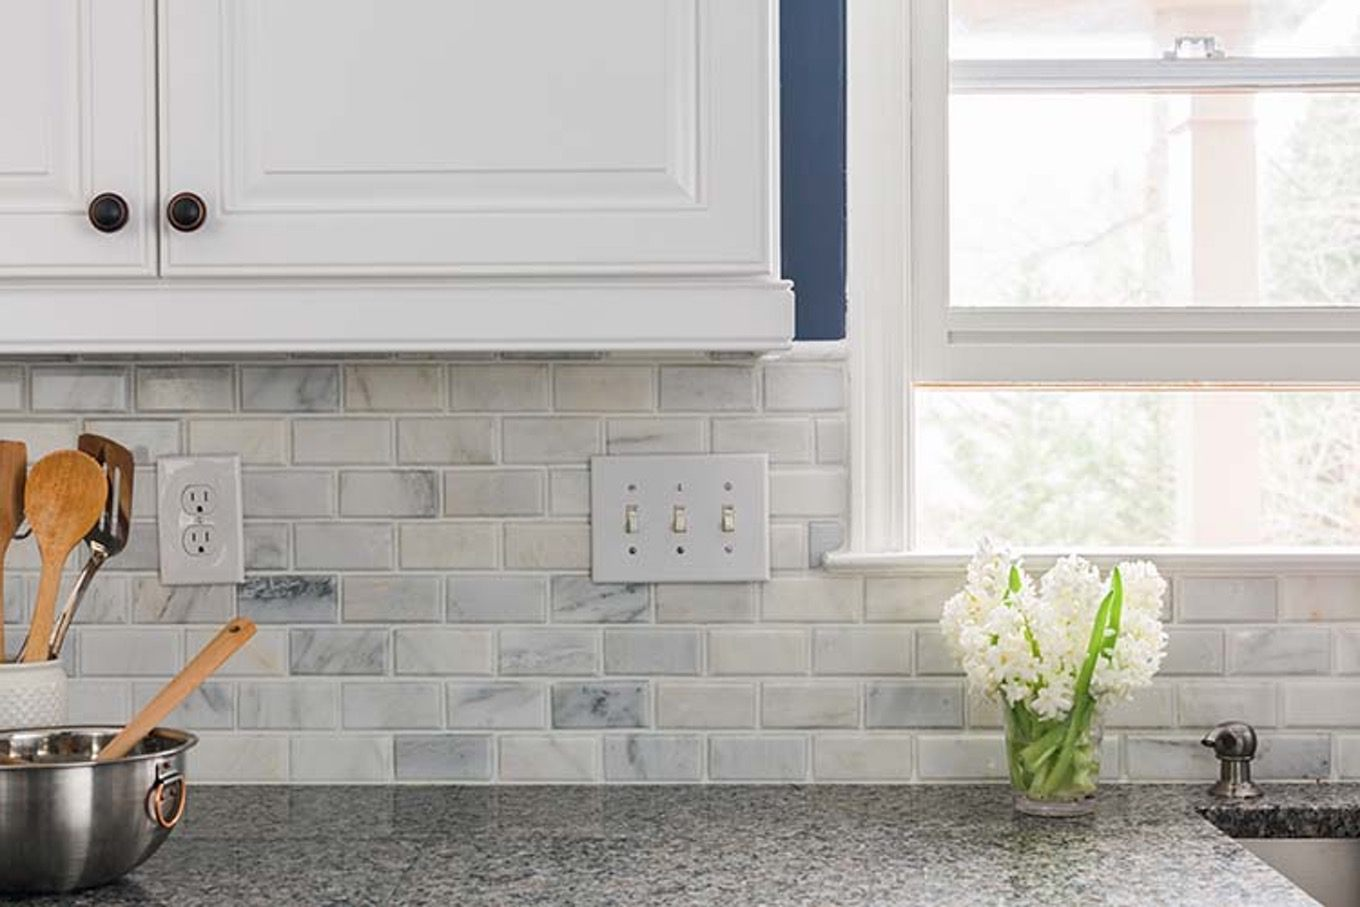 white tile kitchen backsplash - Sealing that Grout! A DIY Project